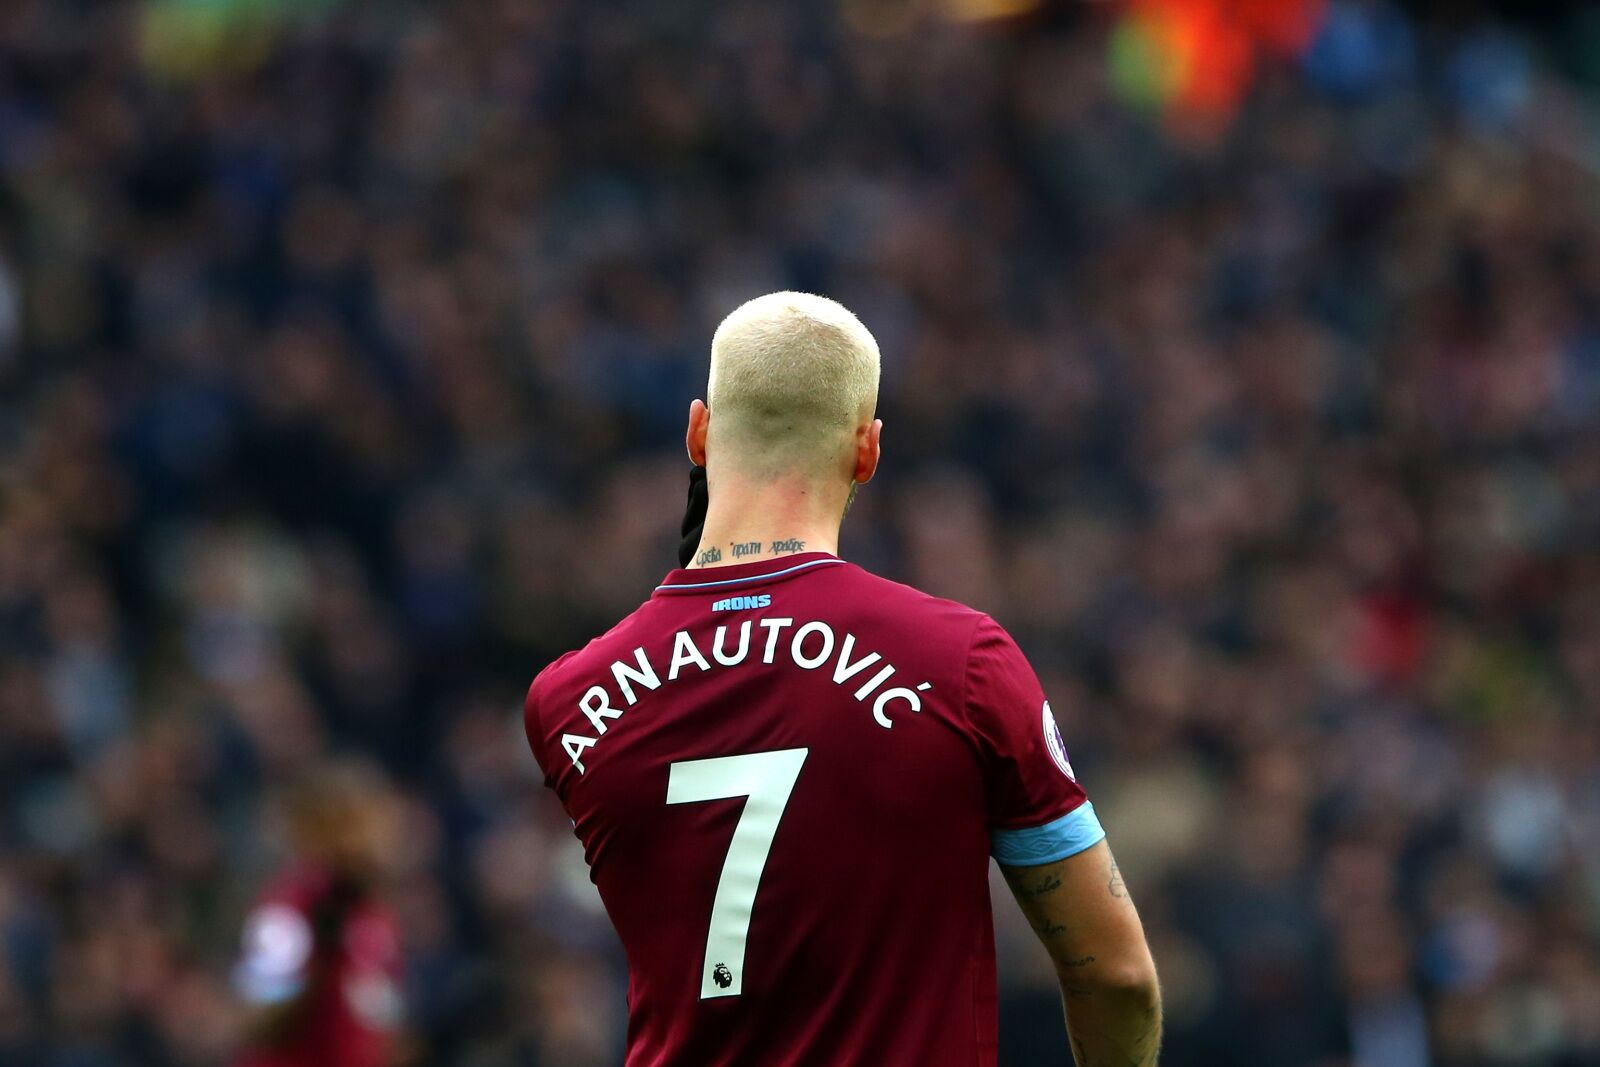 West Ham's Marko Arnautovic is making a mistake in wanting to leave the Hammers